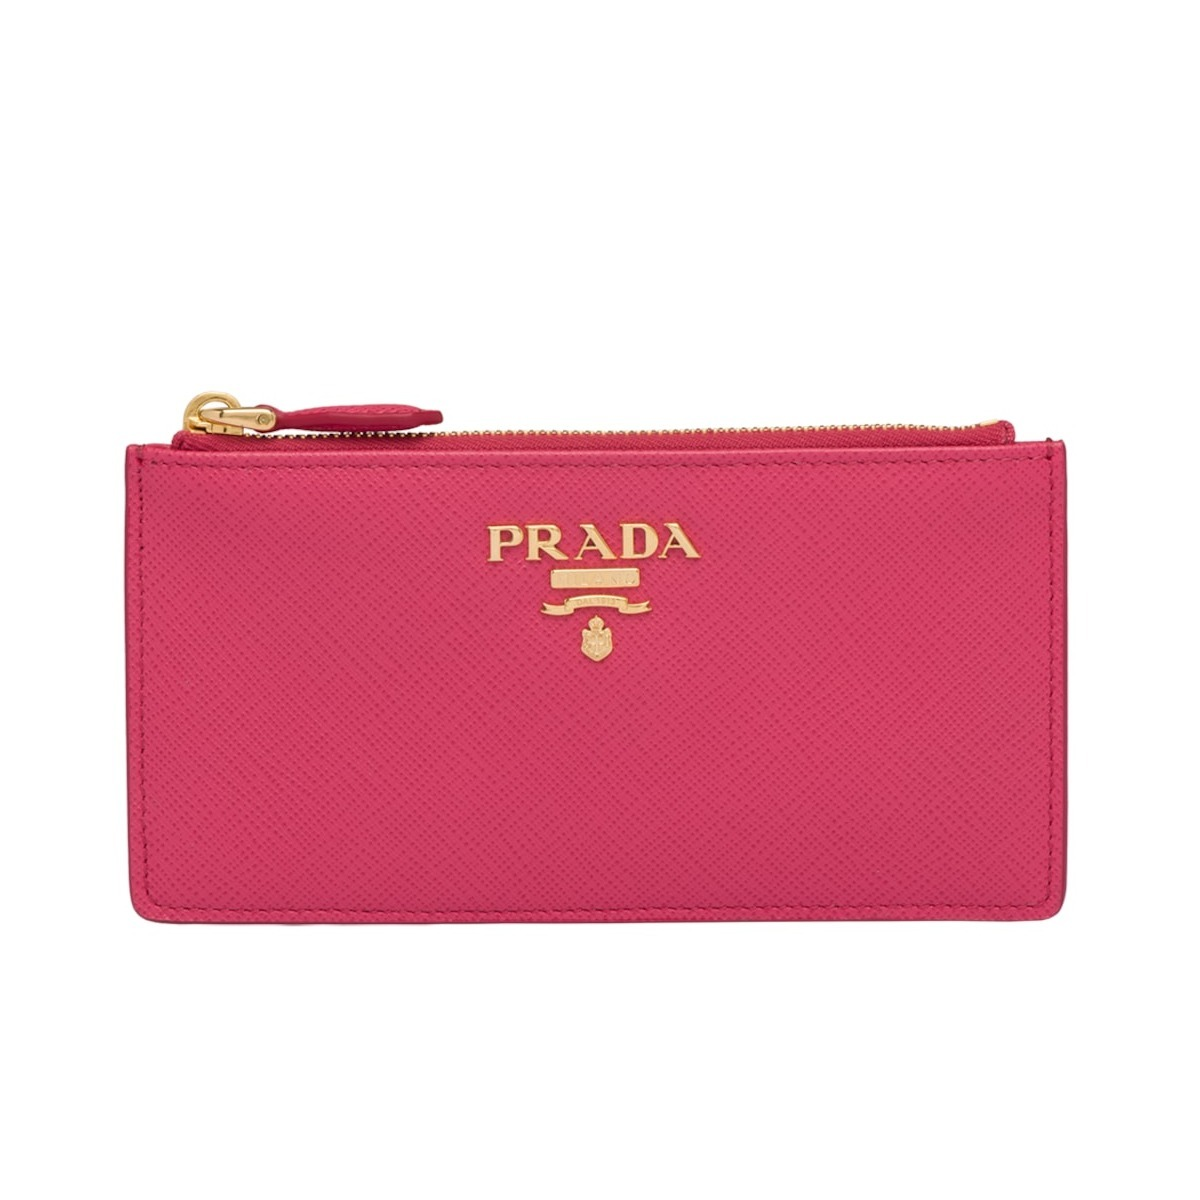 shop prada wallets & card holders